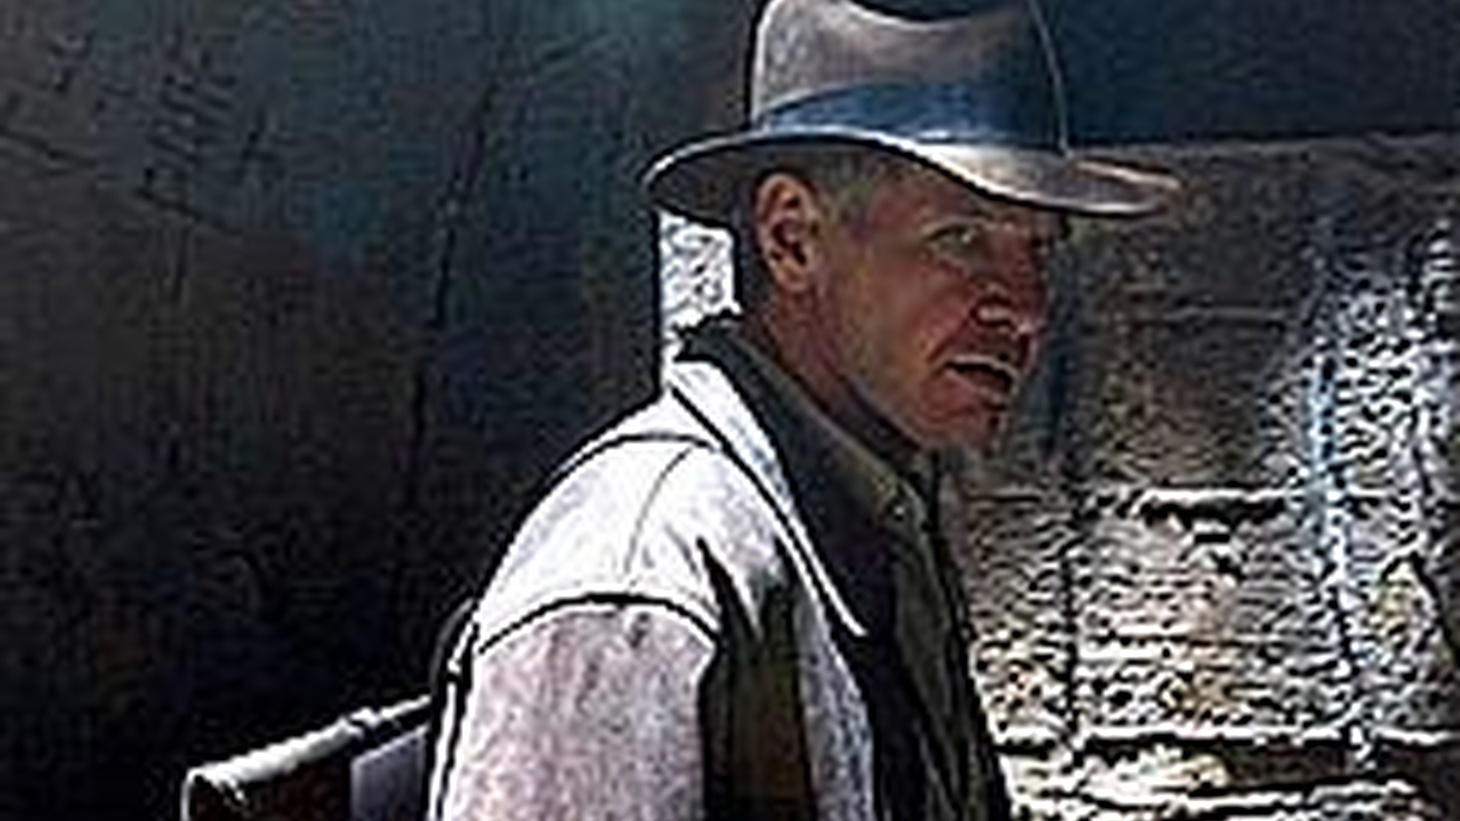 Joe Morgenstern, film critic for the Wall Street Journal, reviews Indiana Jones and the Kingdom of the Crystal Skull.